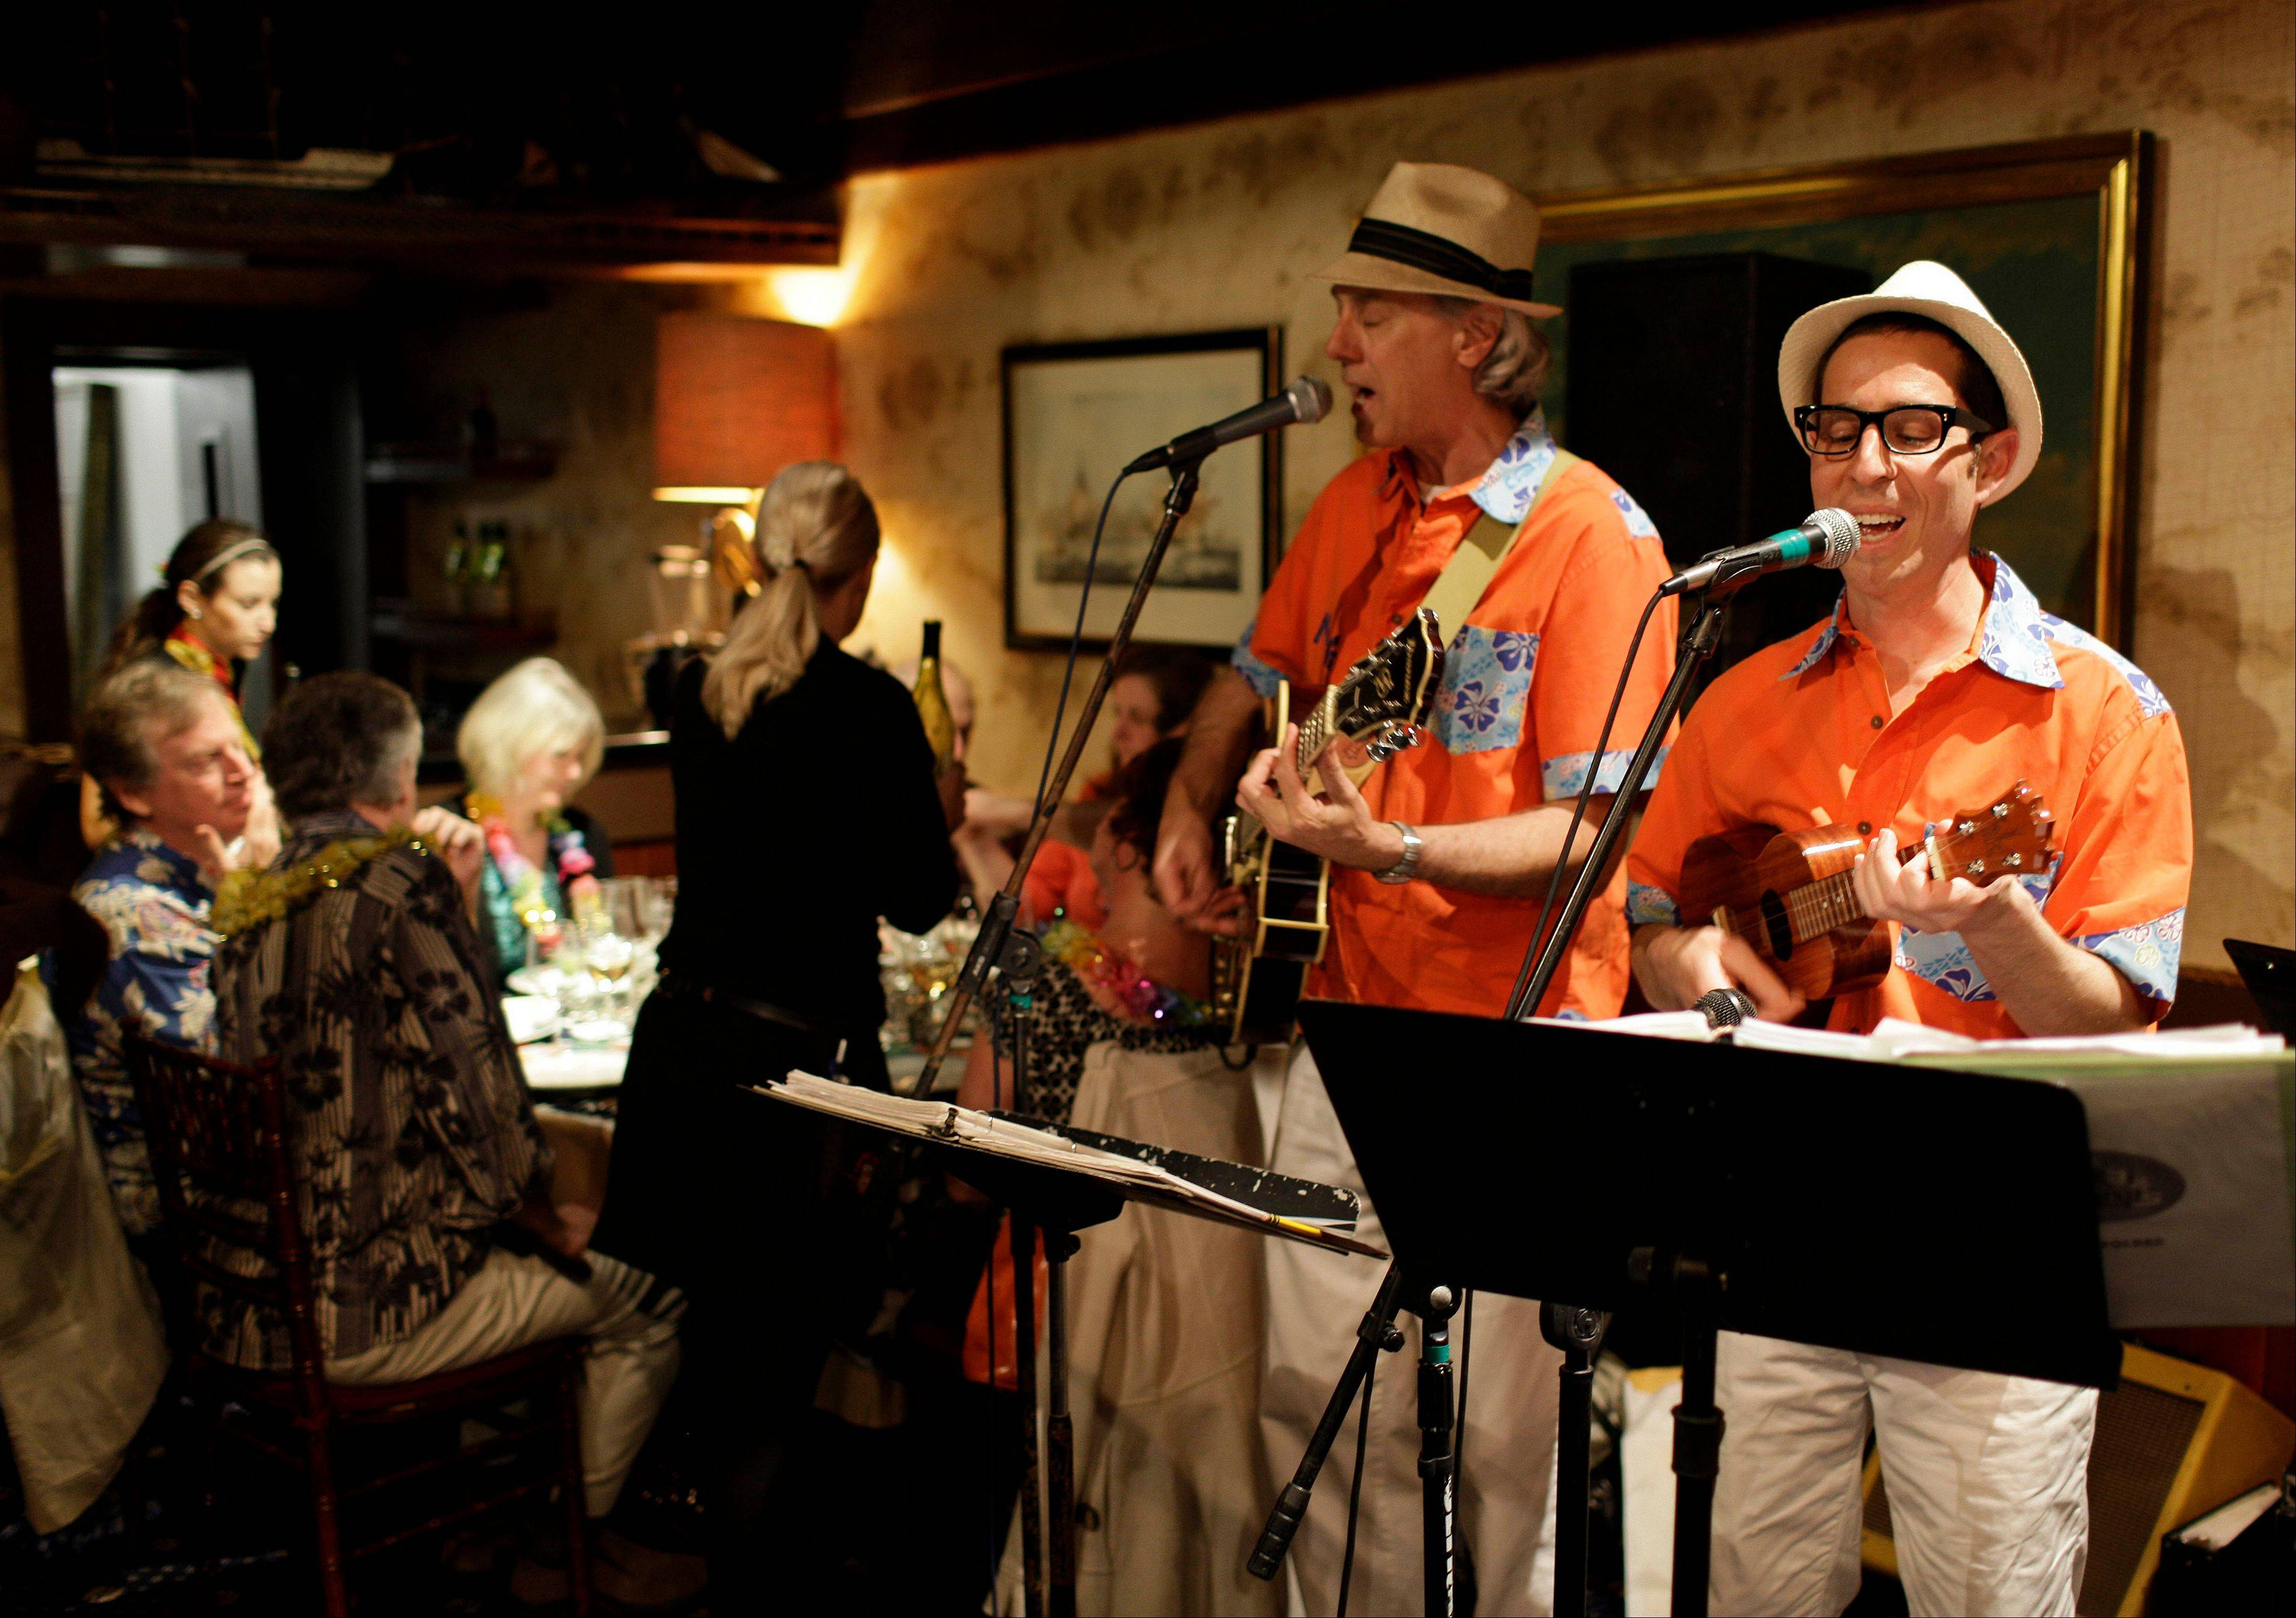 Winemaker Judd Finkelstein, right, of Judd's Hill winery, plays his ukulele with his band at Trader Vic's restaurant in Emeryville, Calif.